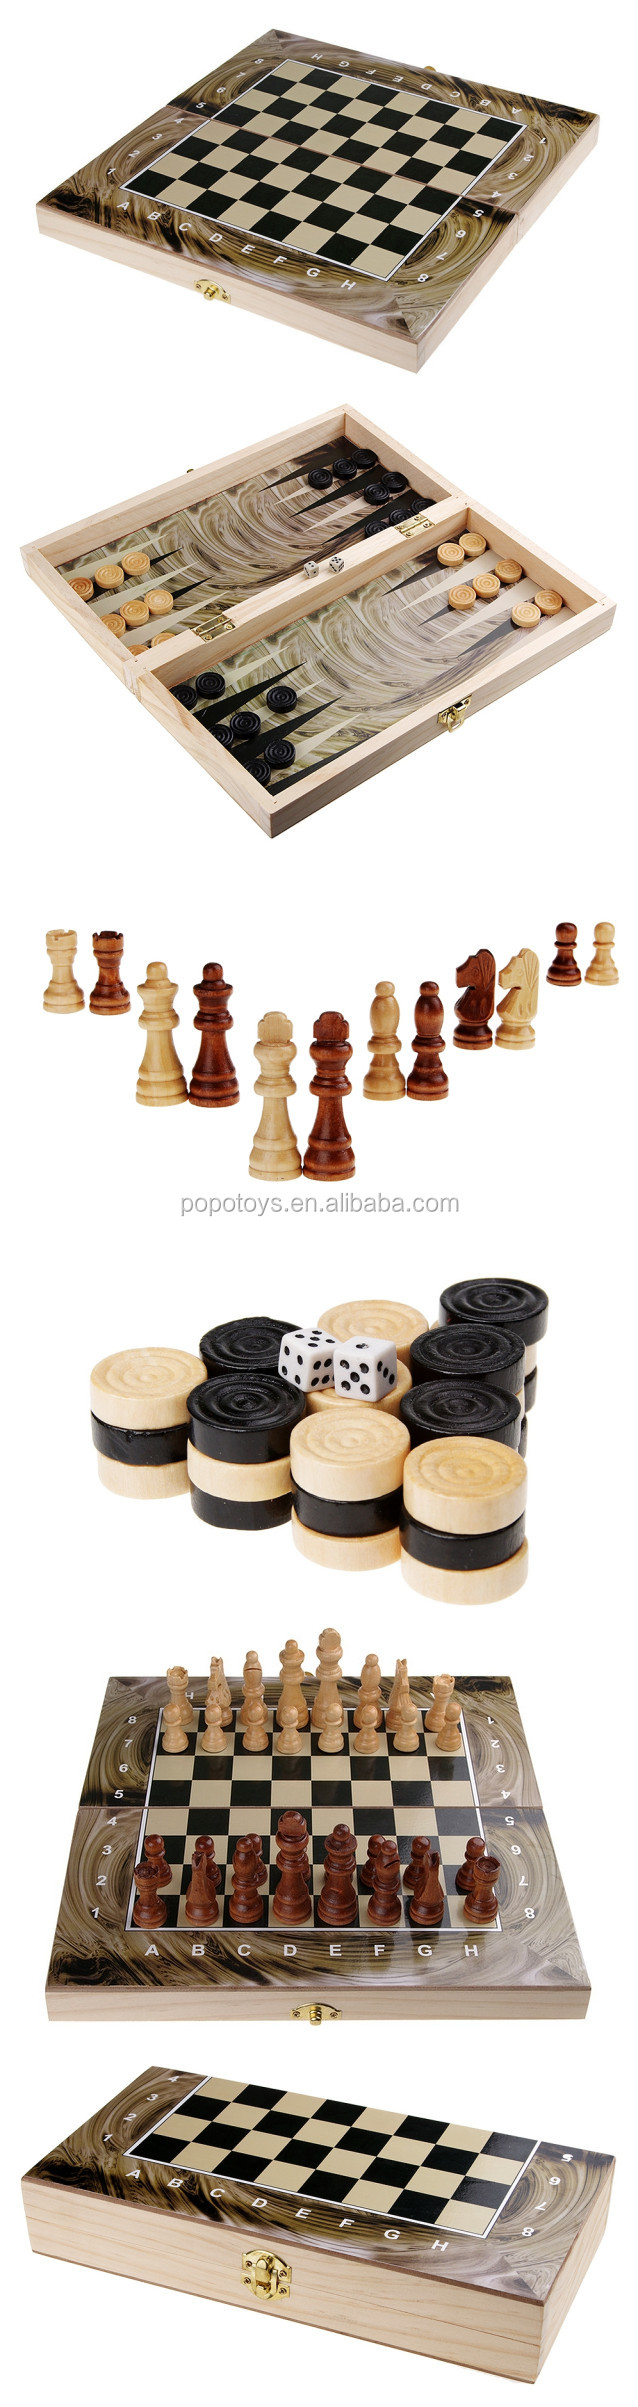 Wooden chess game backgammon checkers set wooden games Where can i buy a chess game